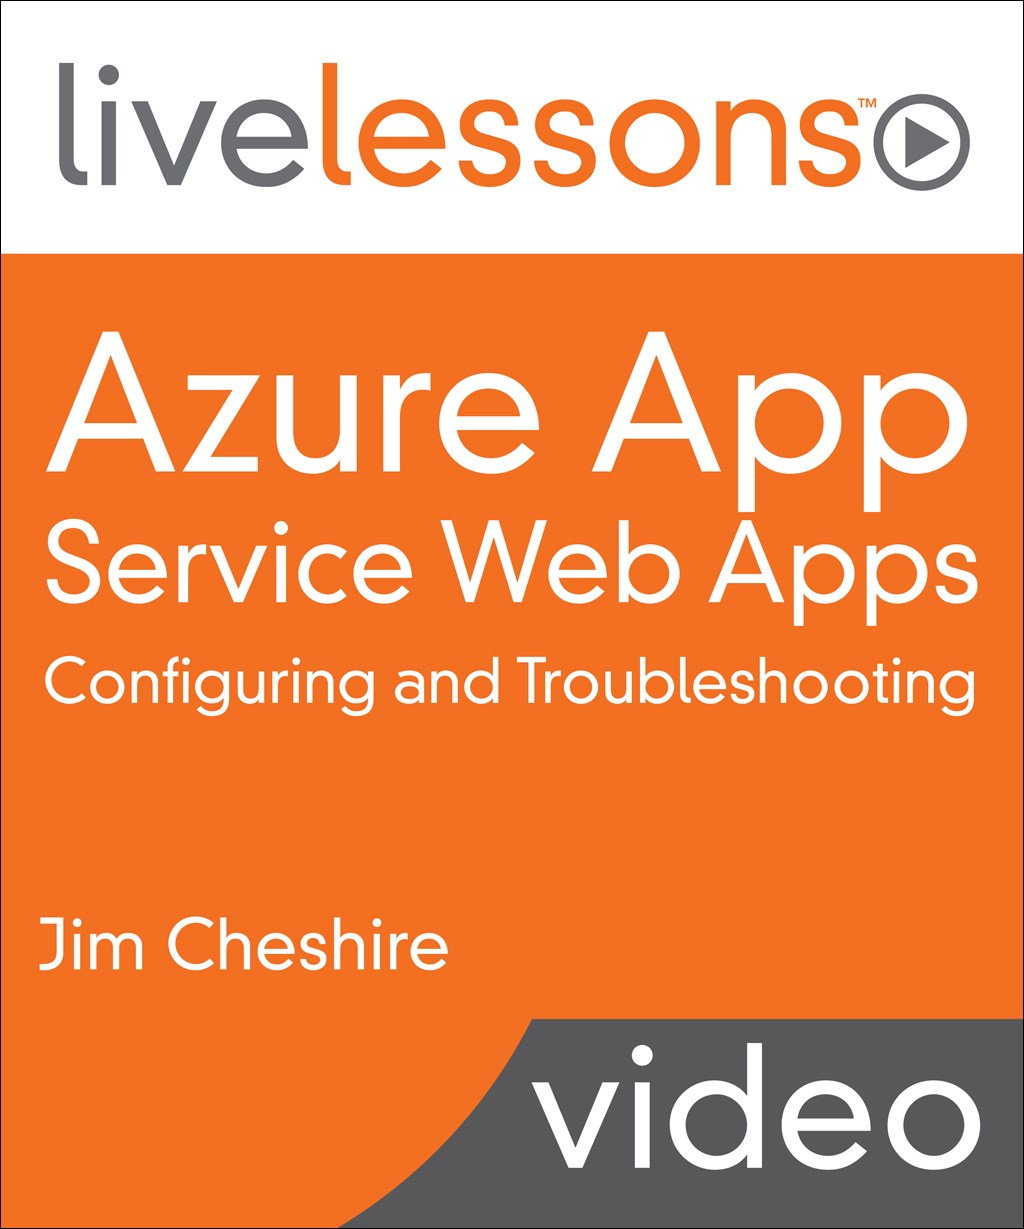 Azure App Service Web Apps: Configuring and Troubleshooting LiveLessons (Video Training)